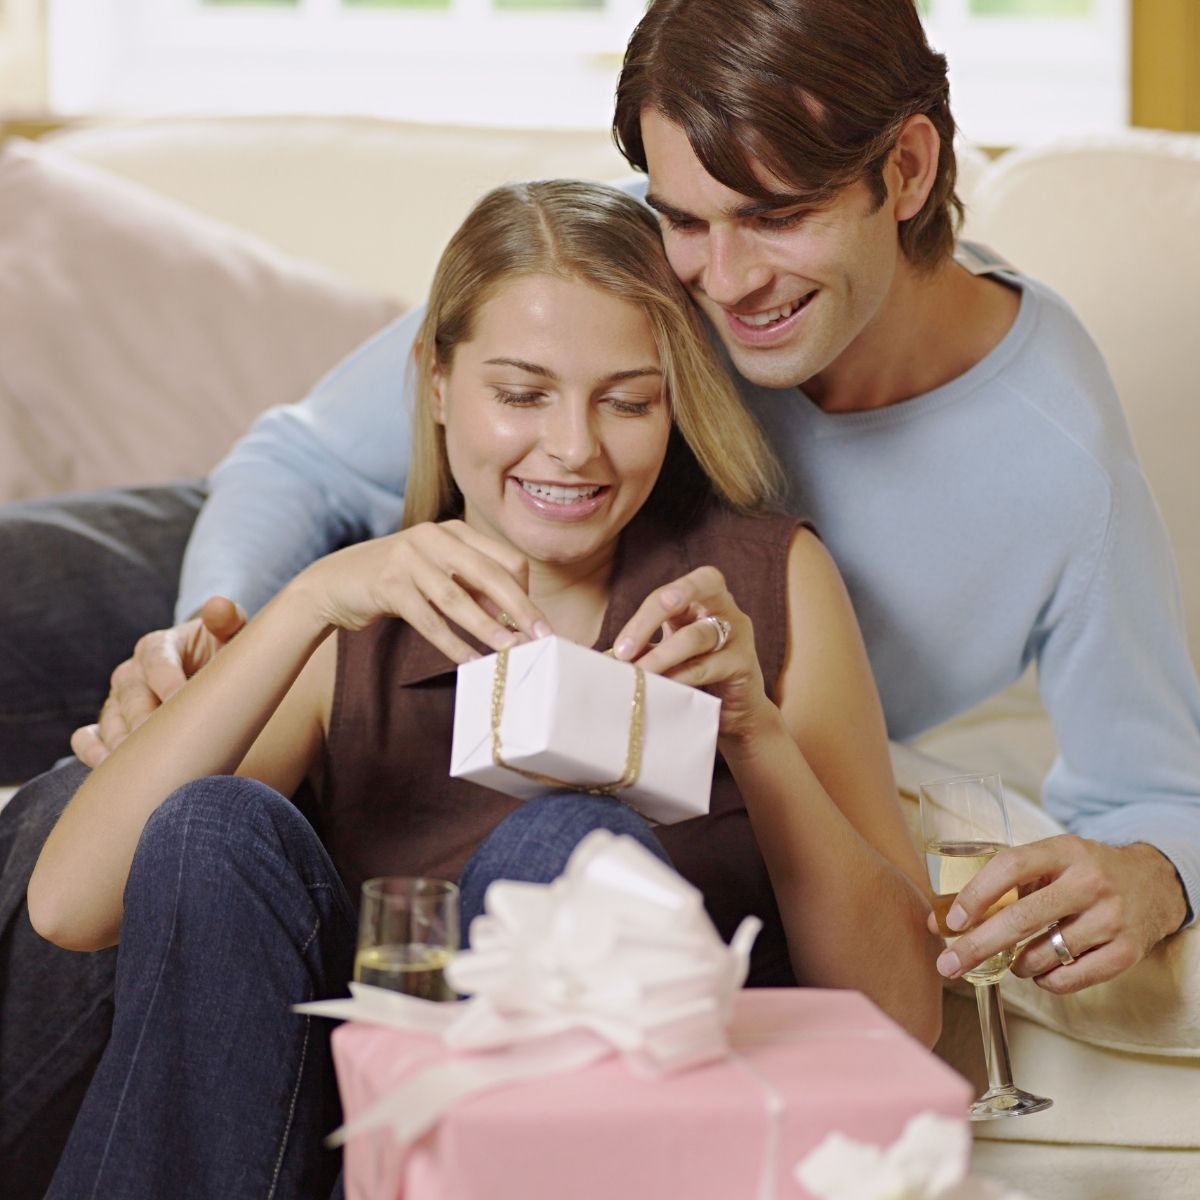 Newly married couple opening wedding gifts together